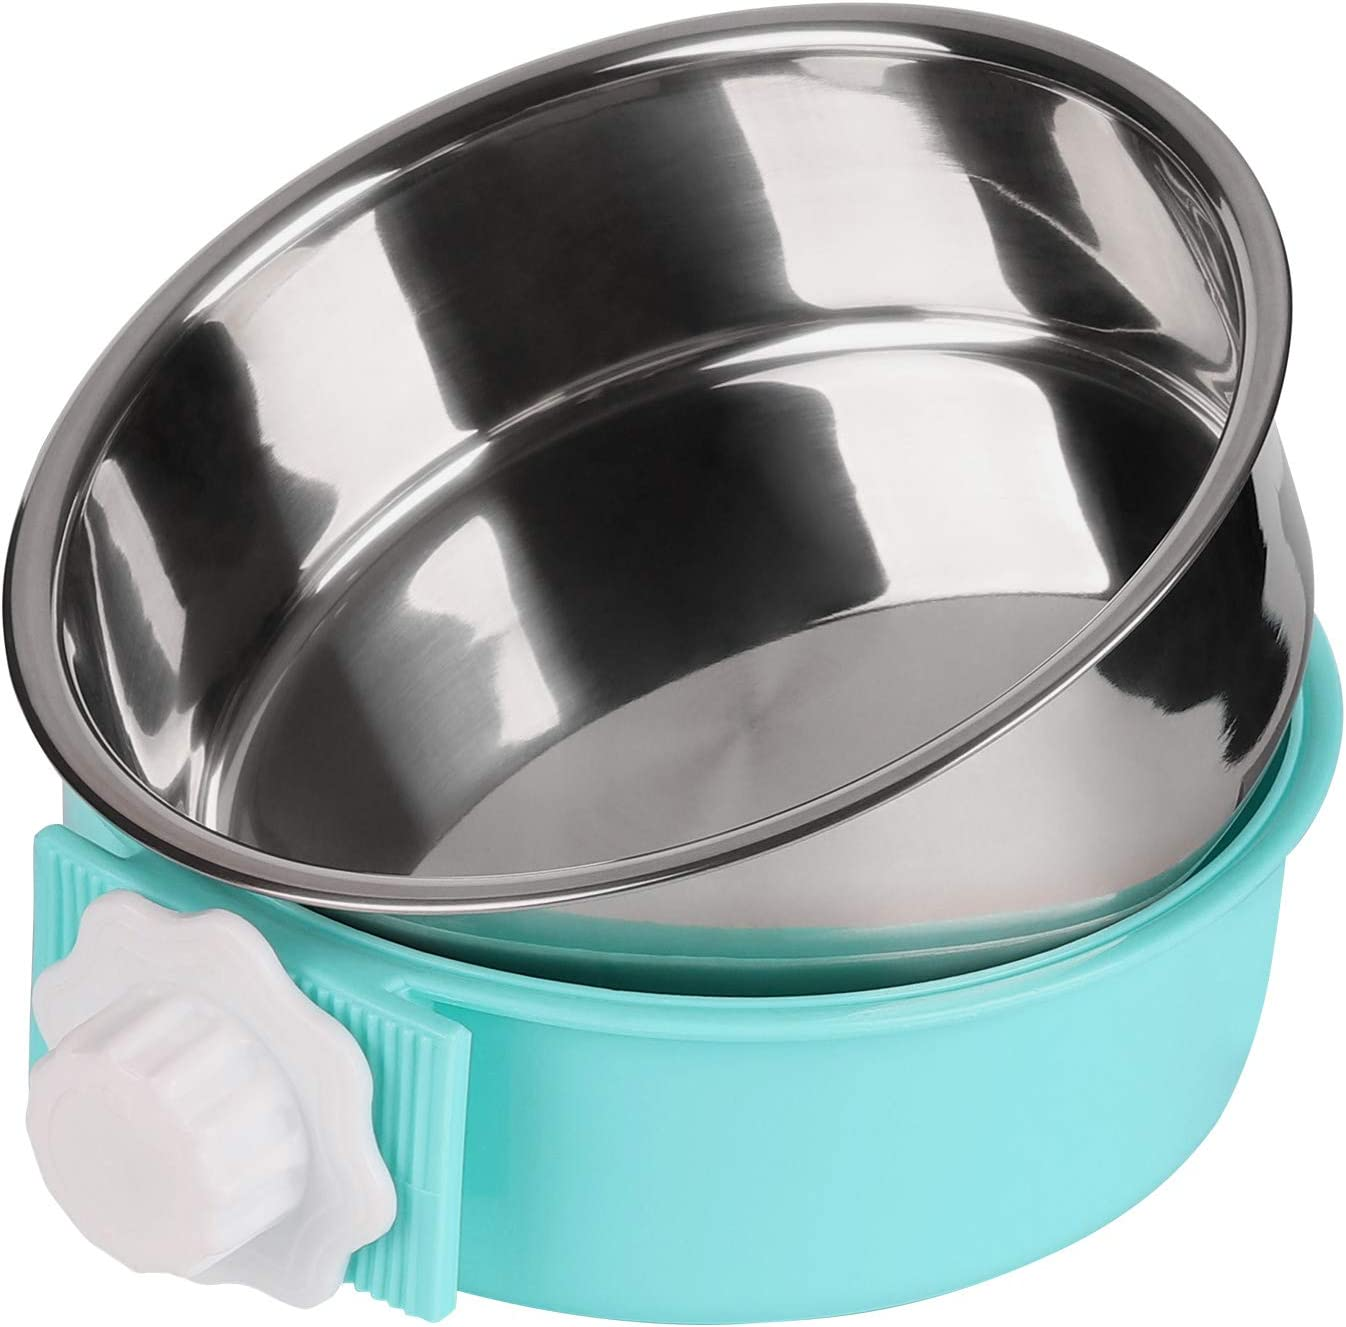 Petworld Paragon Detachable 2in1 Dog Crate Water Bowl no Spill Removable Hanging-on Dog Food Bowls Stainless Steel pet Feeder Suitable for Dog Cat Rabbit Bird